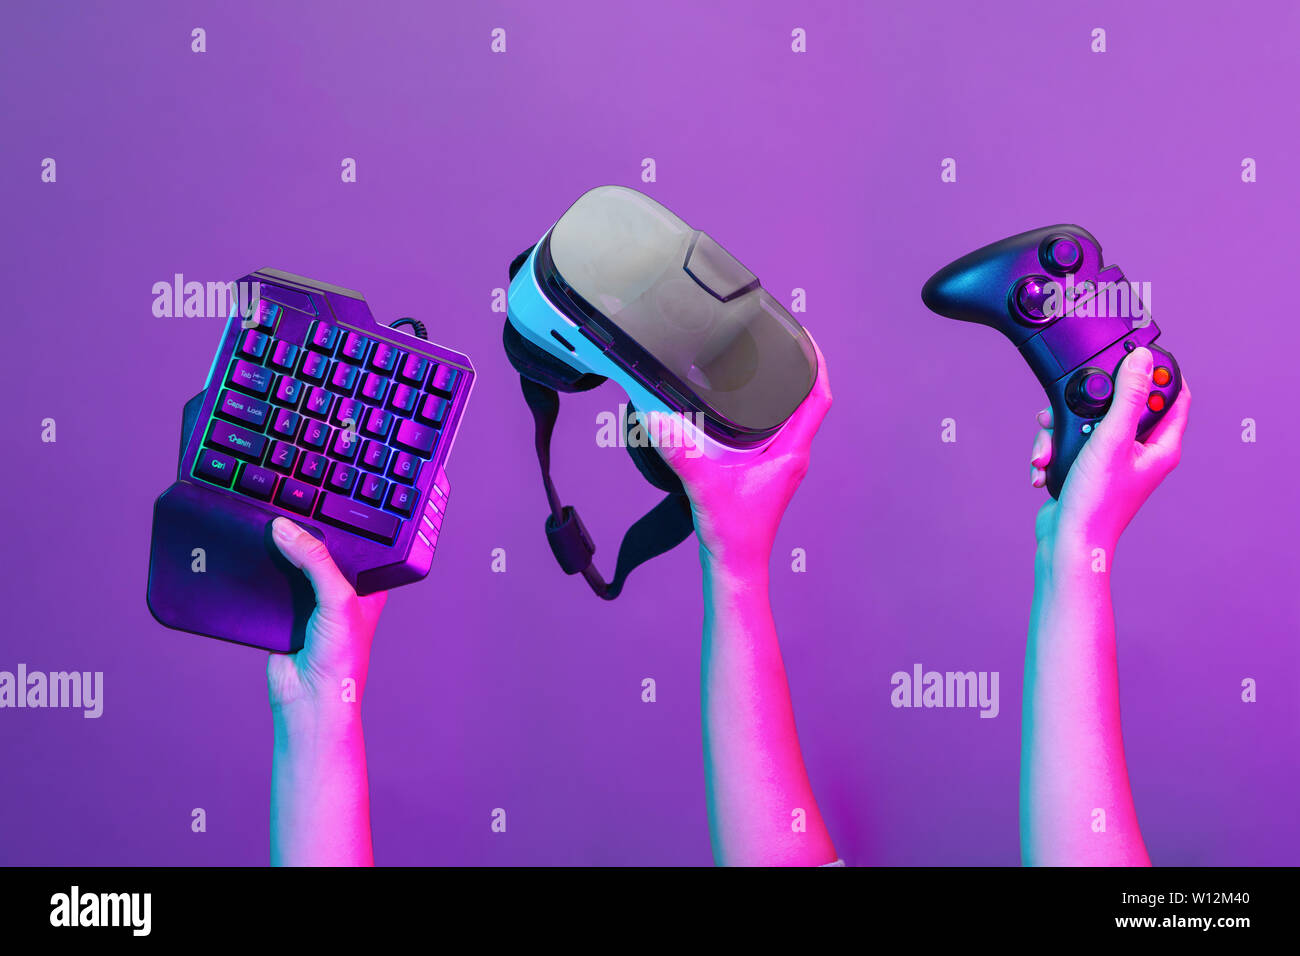 Set of hands with gamepad, keyboard, virtual reality headset